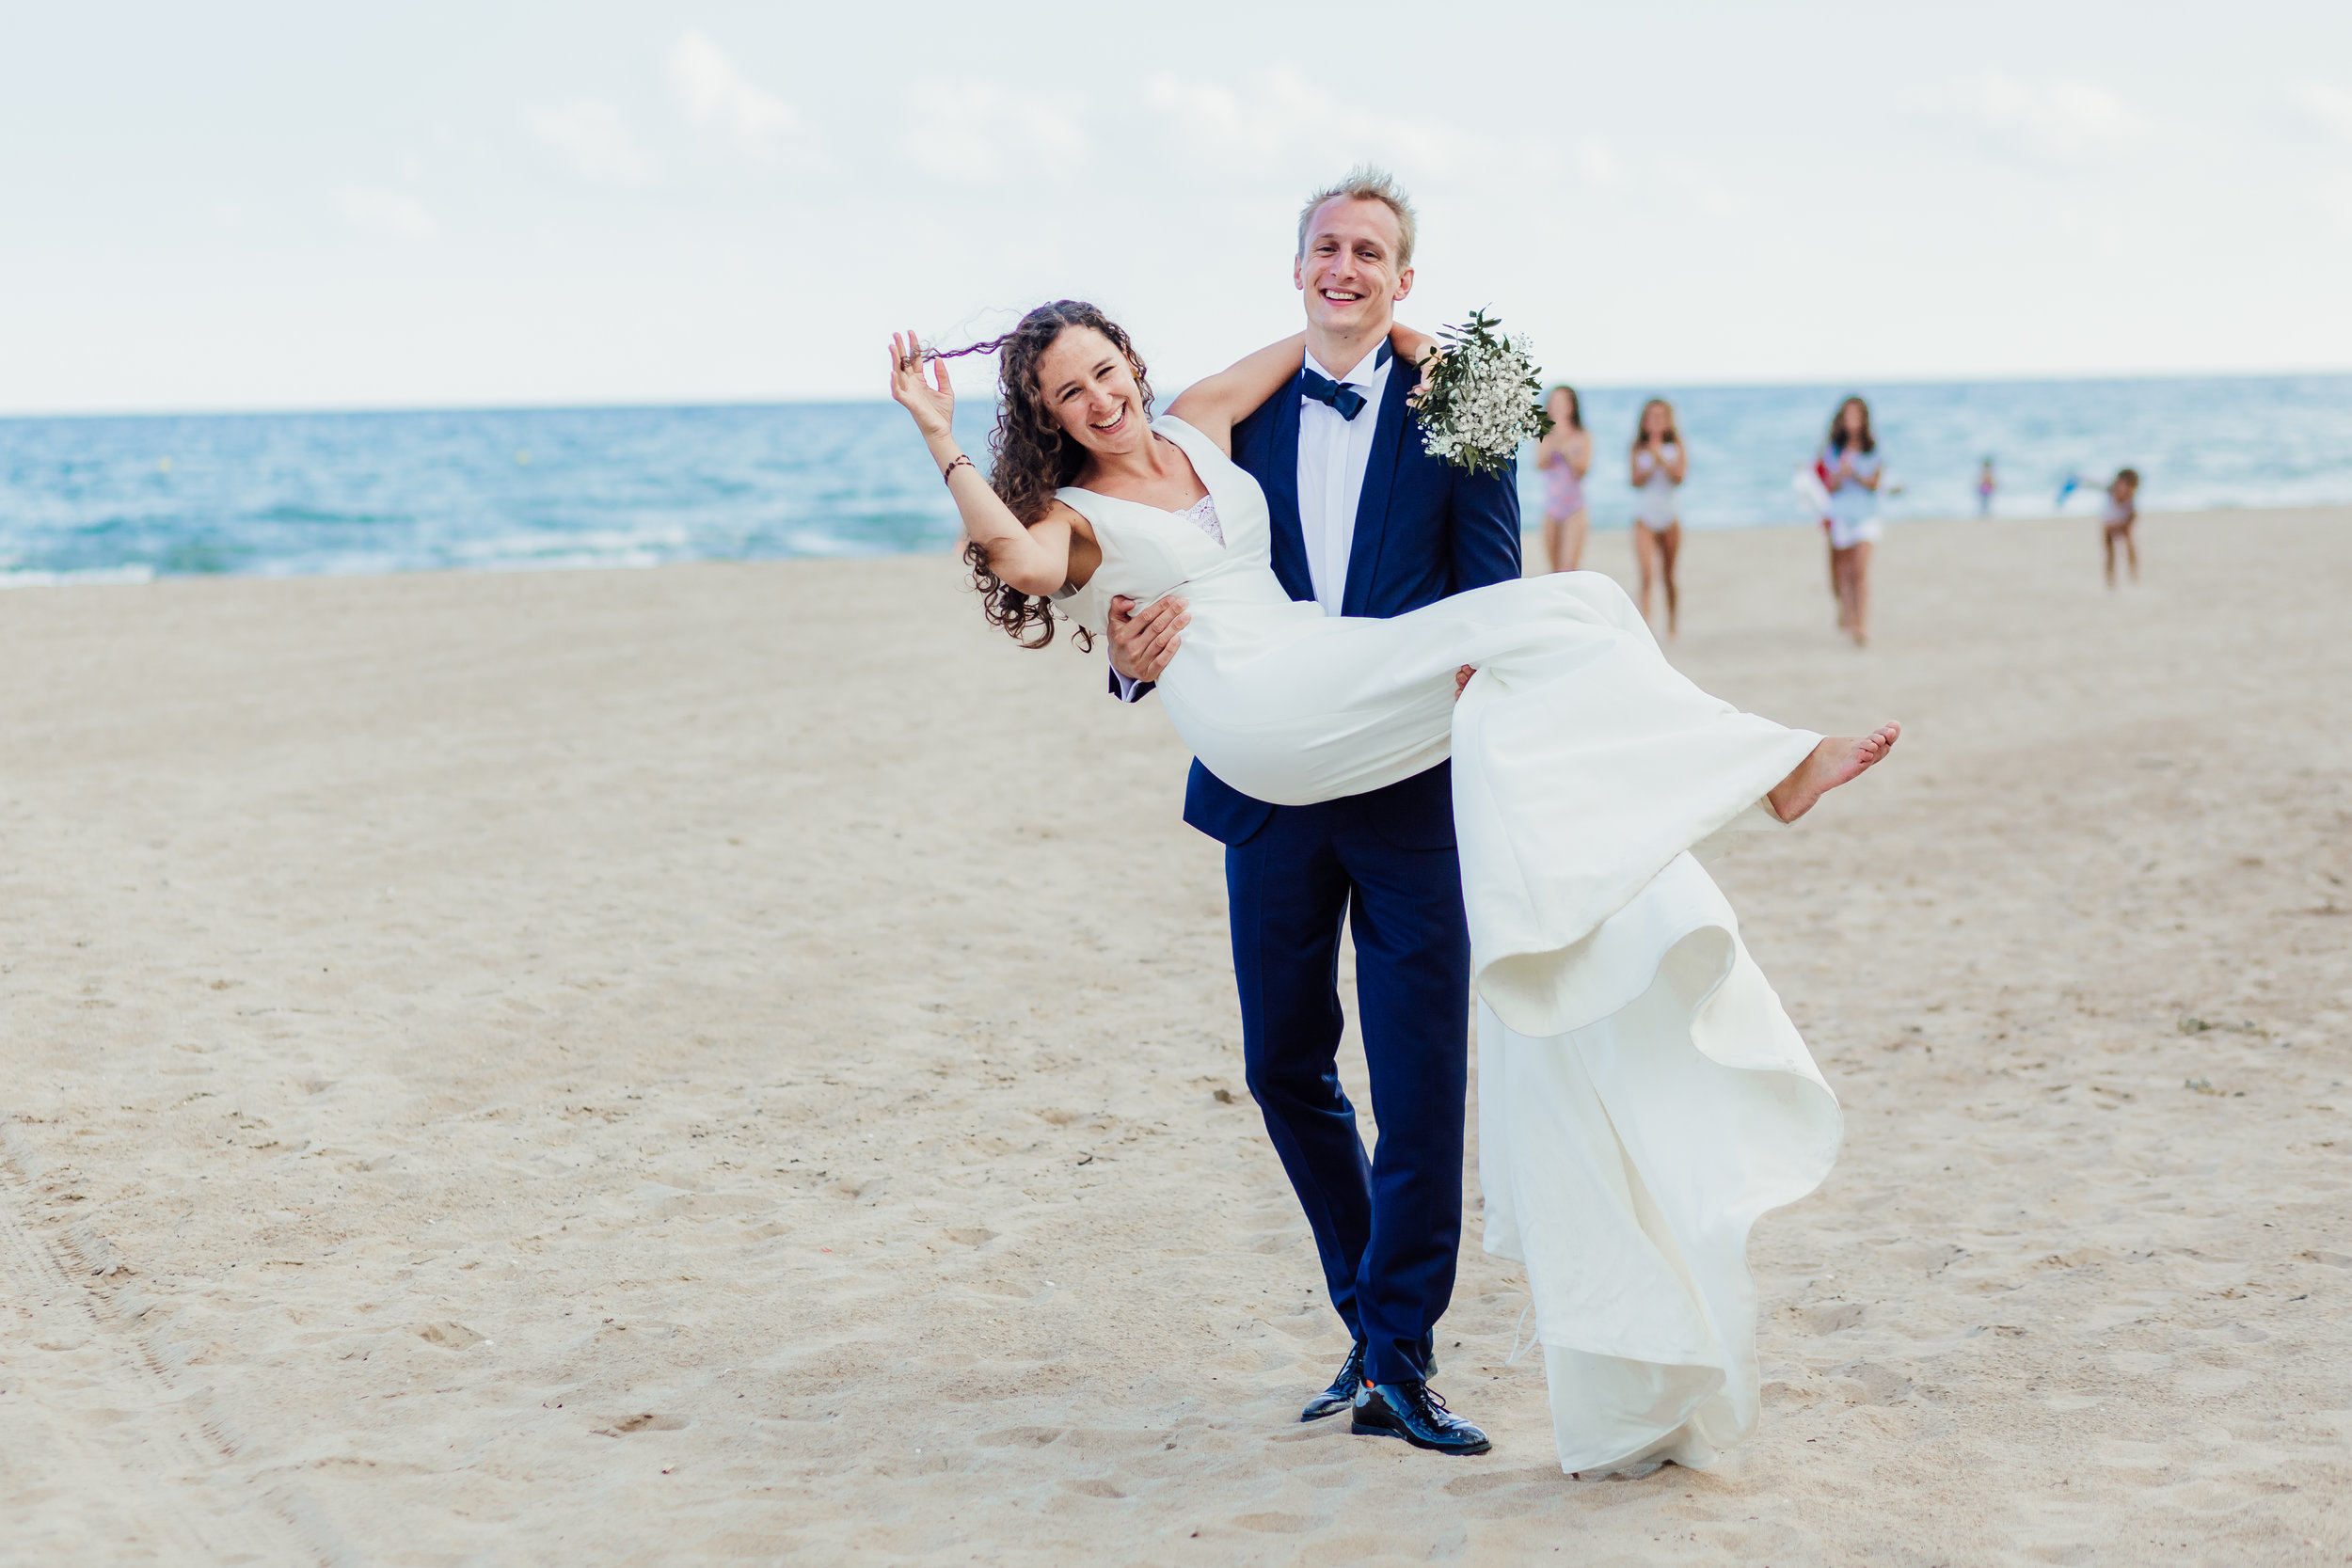 A bride and groom on the beach in Platja de Castelldefells on their wedding day at Almiral de la Font, Sant Pere de Ribes, Sitges, Barcelona by Jo Kemp Photography